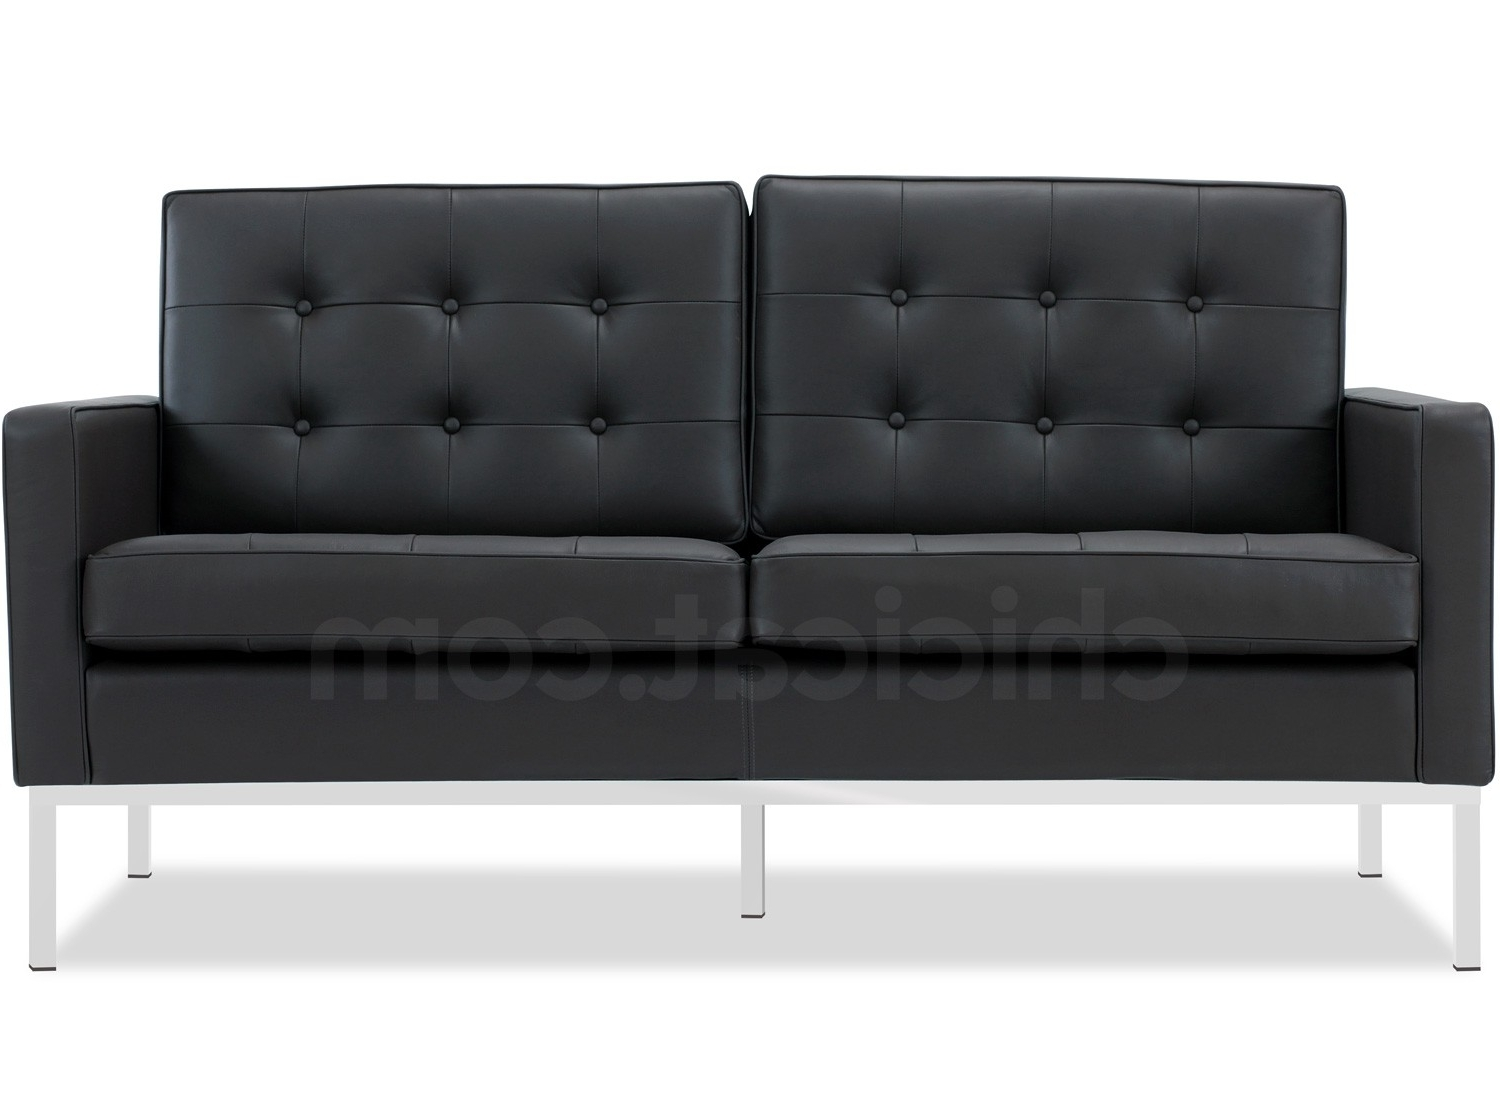 Most Current Florence Knoll Leather Sofas Within Florence Knoll Sofa 2 Seater Leather (Platinum Replica) (View 14 of 15)